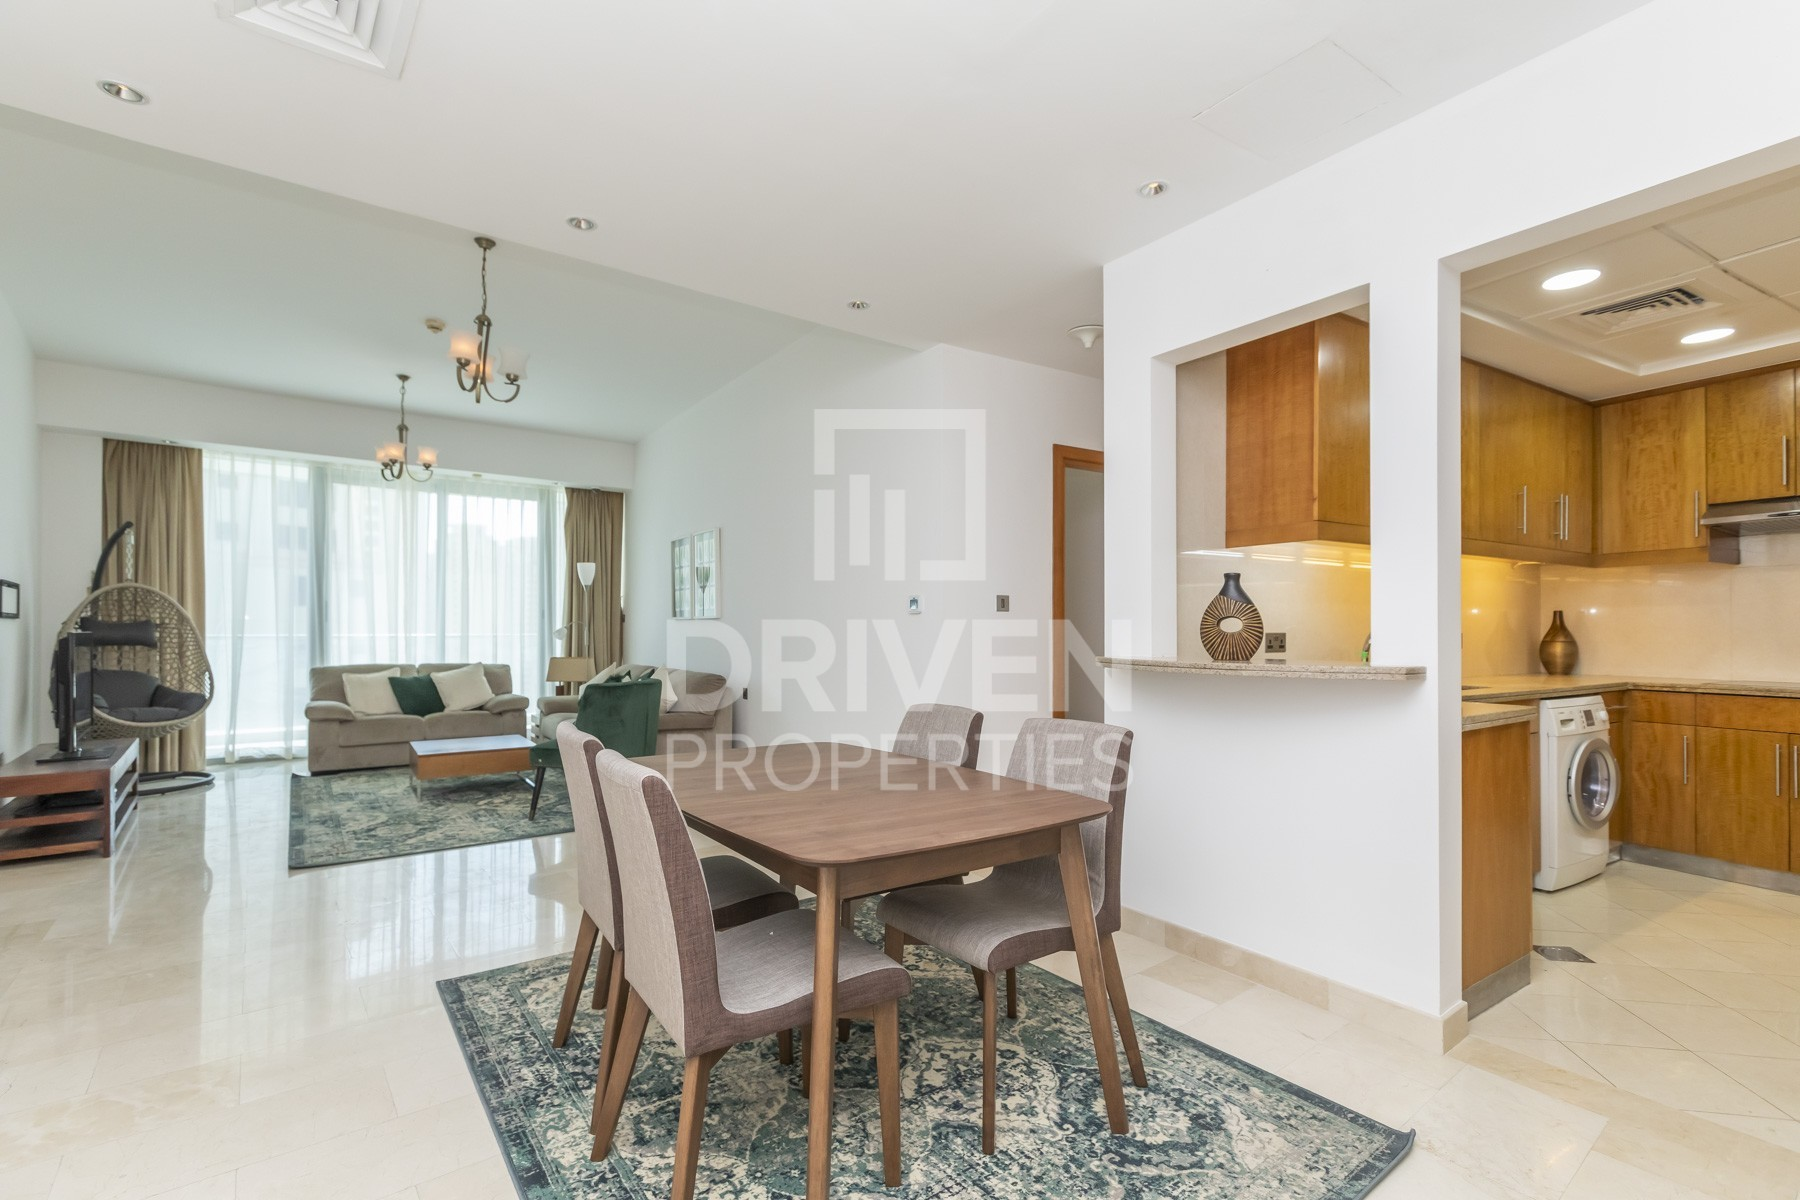 Large and Bright Apt | Upscale Residence